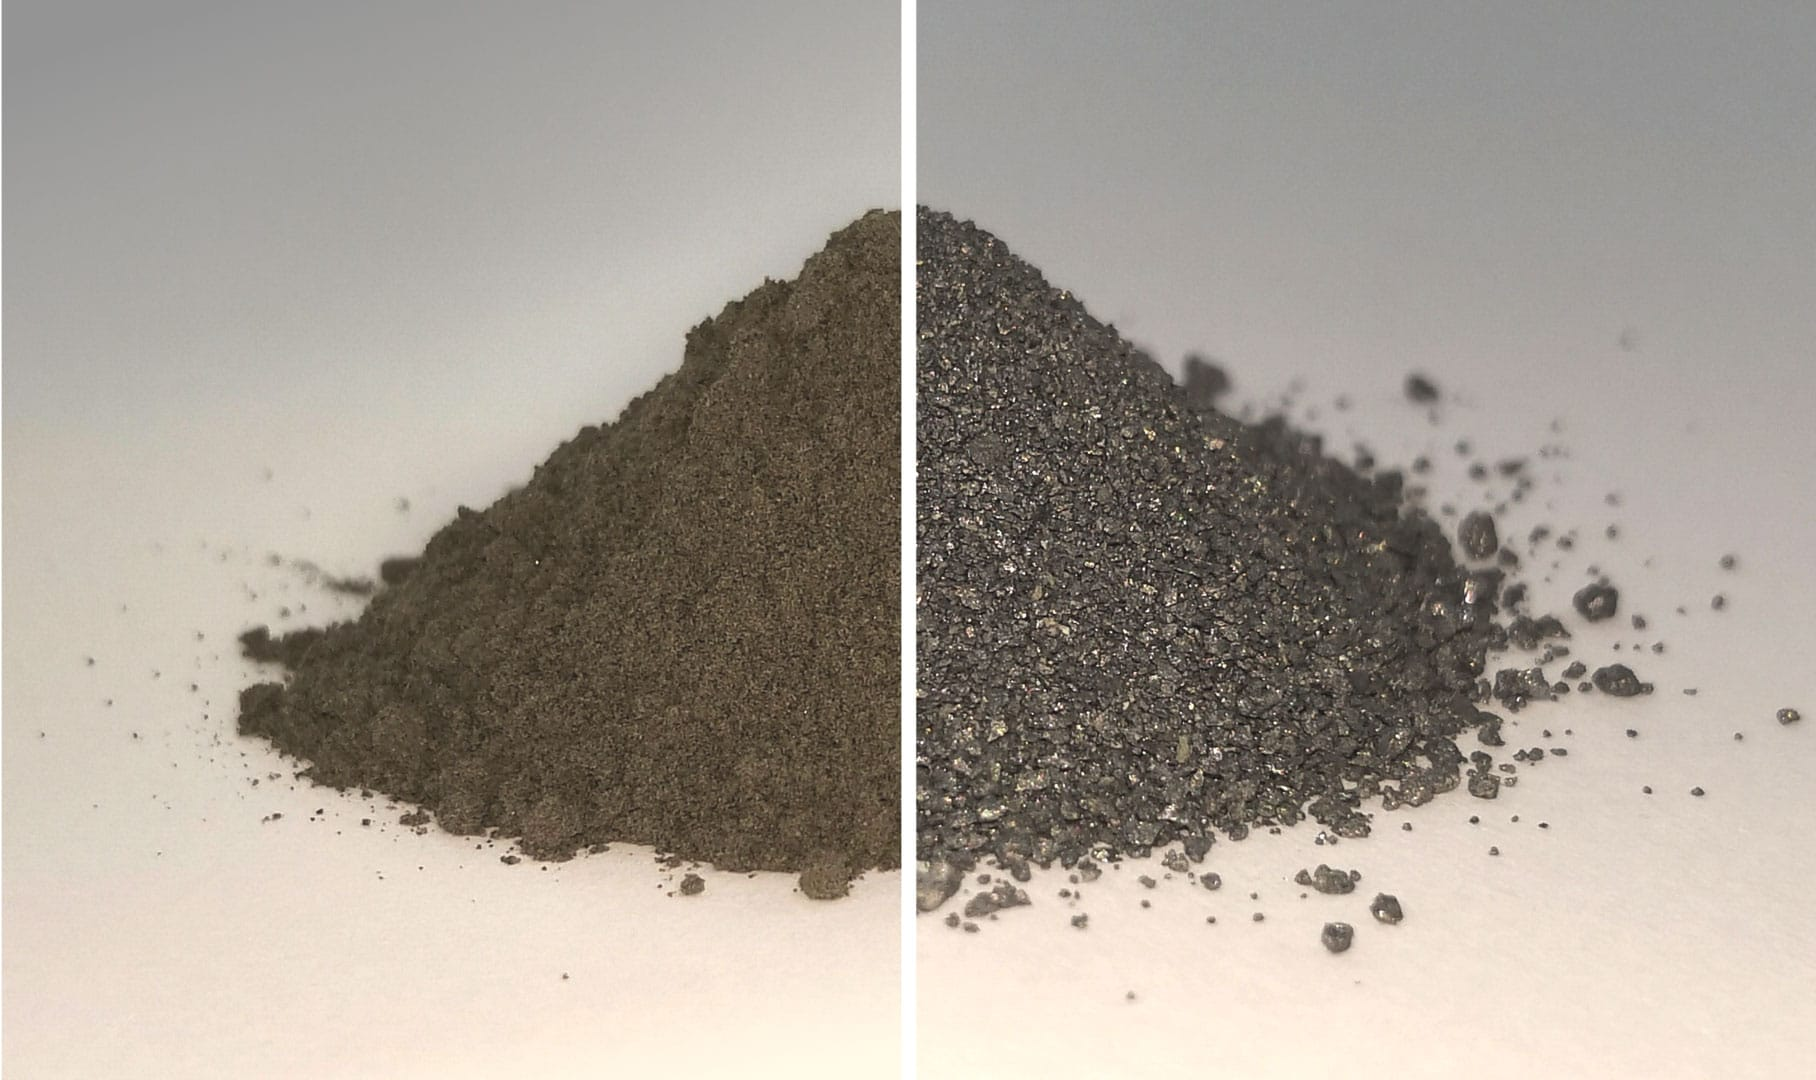 Scientists are making oxygen from moon dust